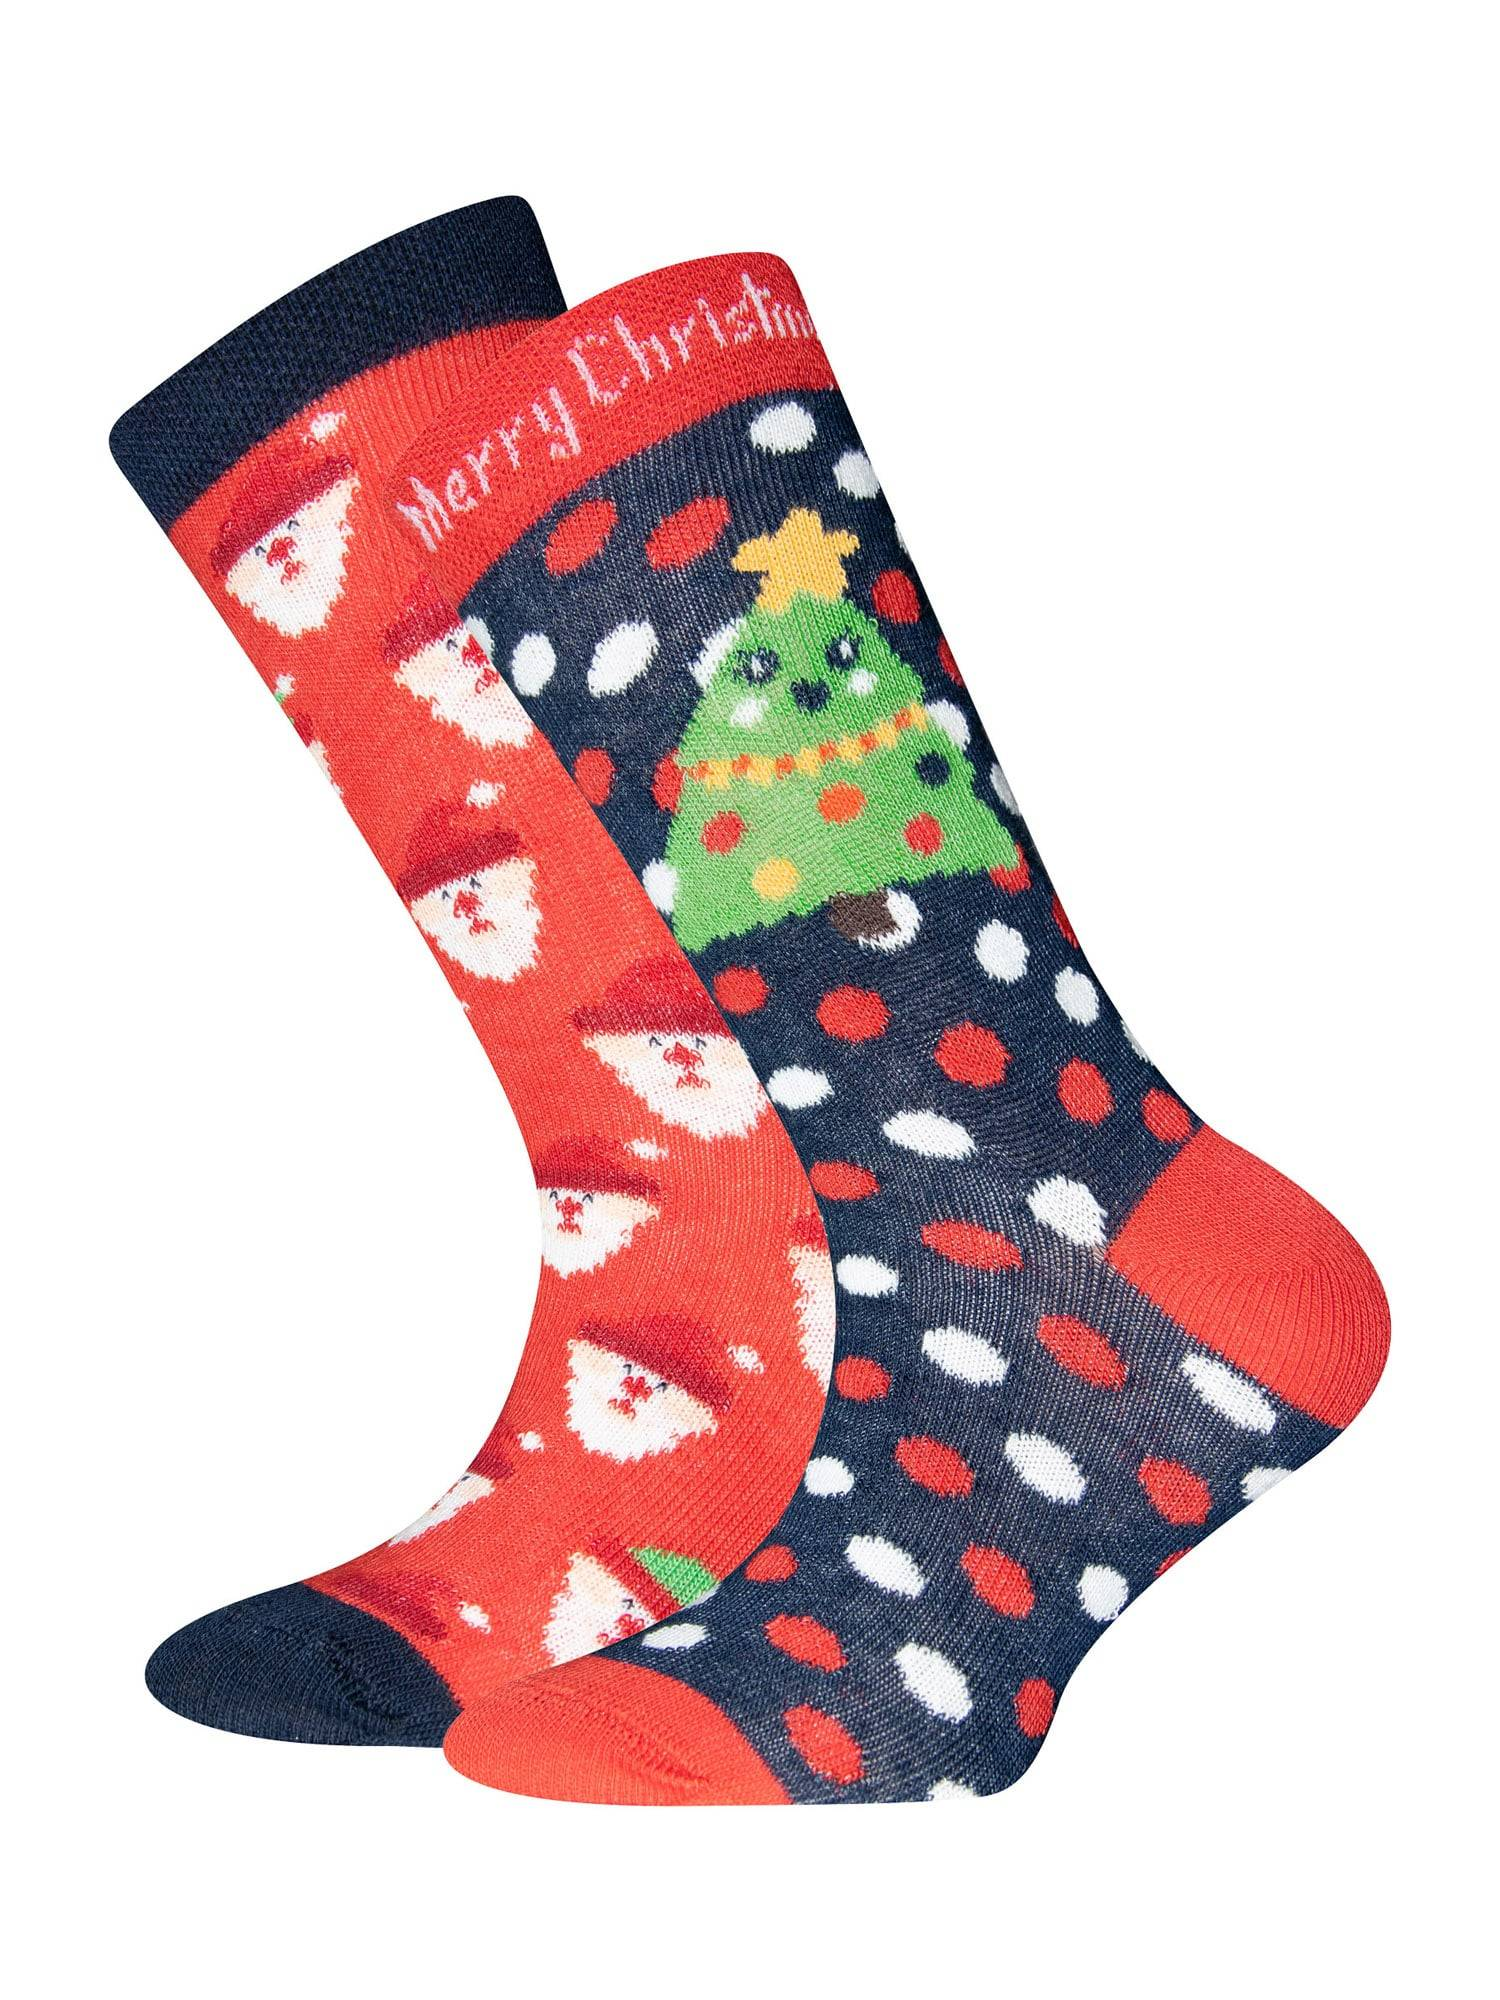 EWERS Chaussettes  - Bleu, Rouge - Taille: 23-26 - boy